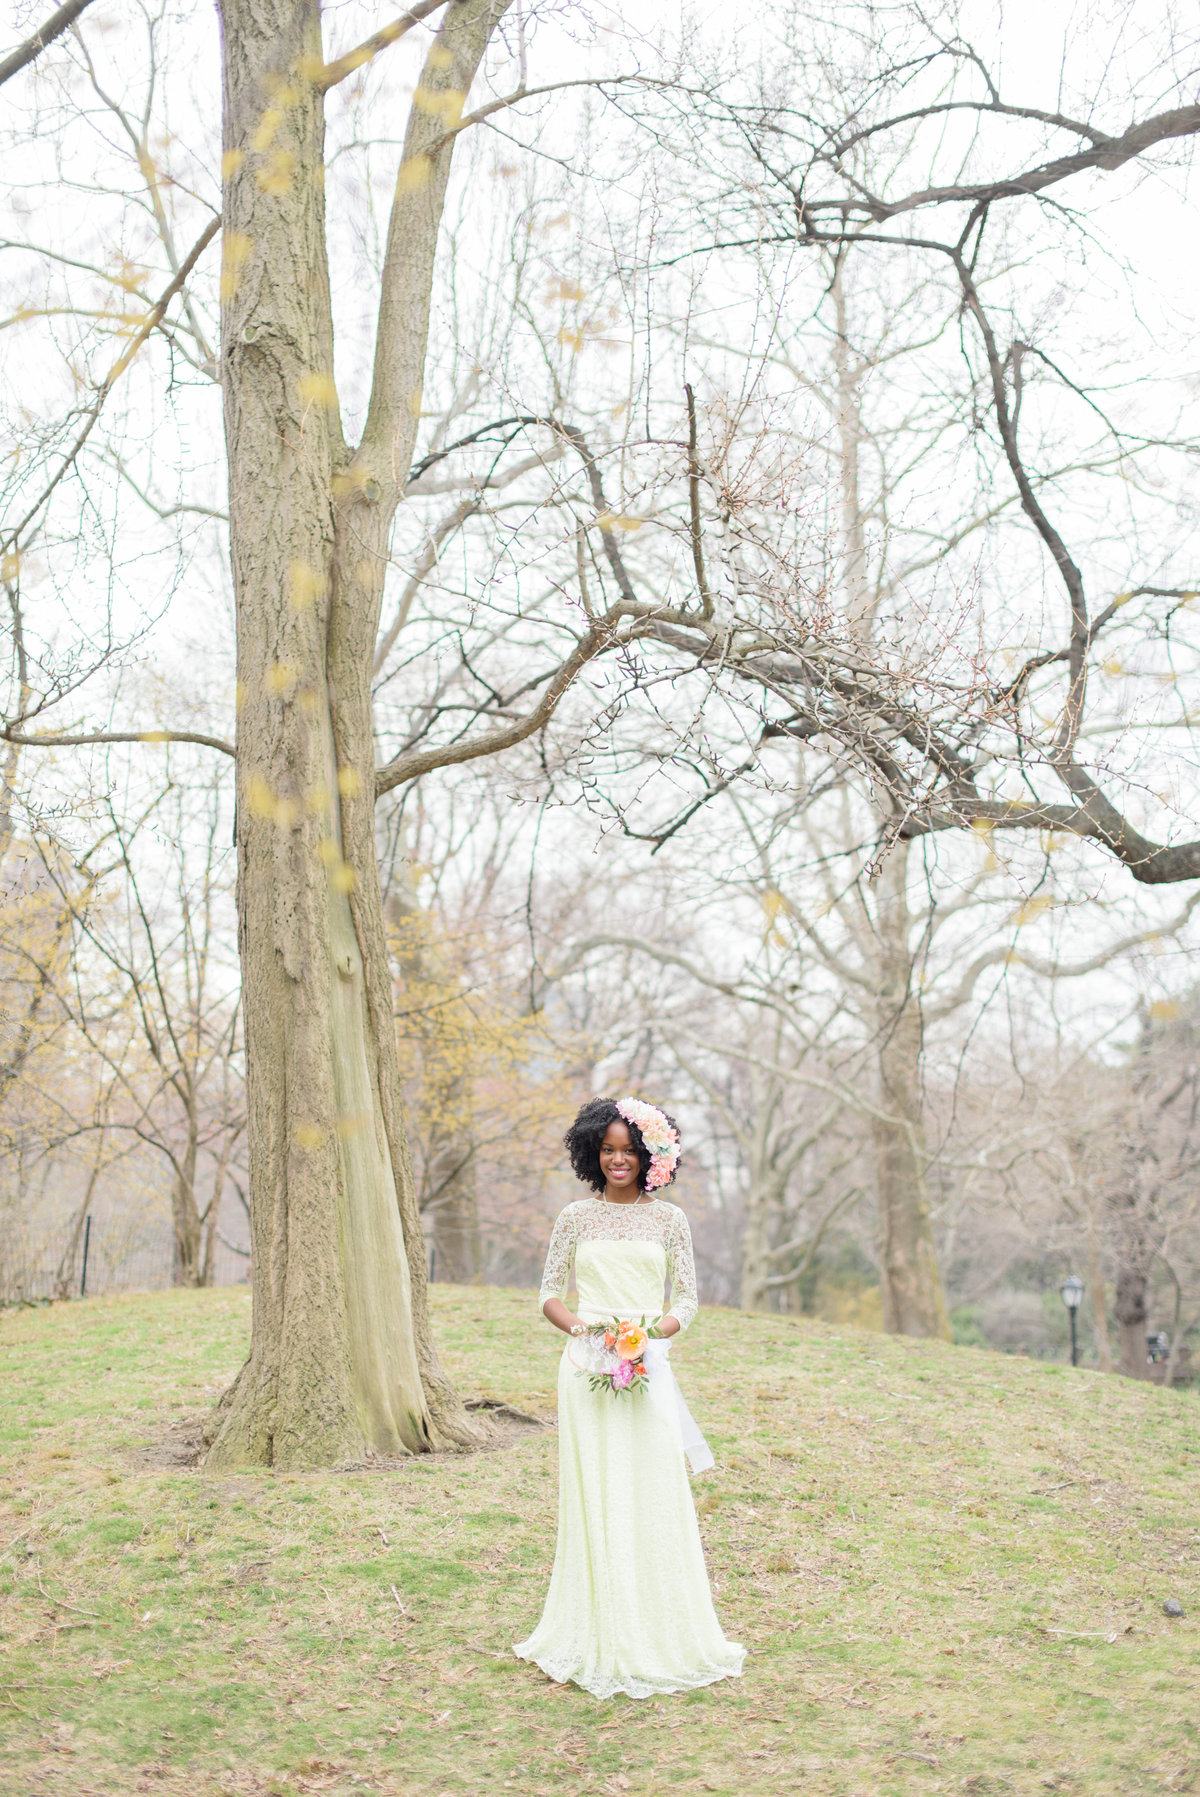 Central Park Wedding Photographer | Bridal Style Inspiration 1